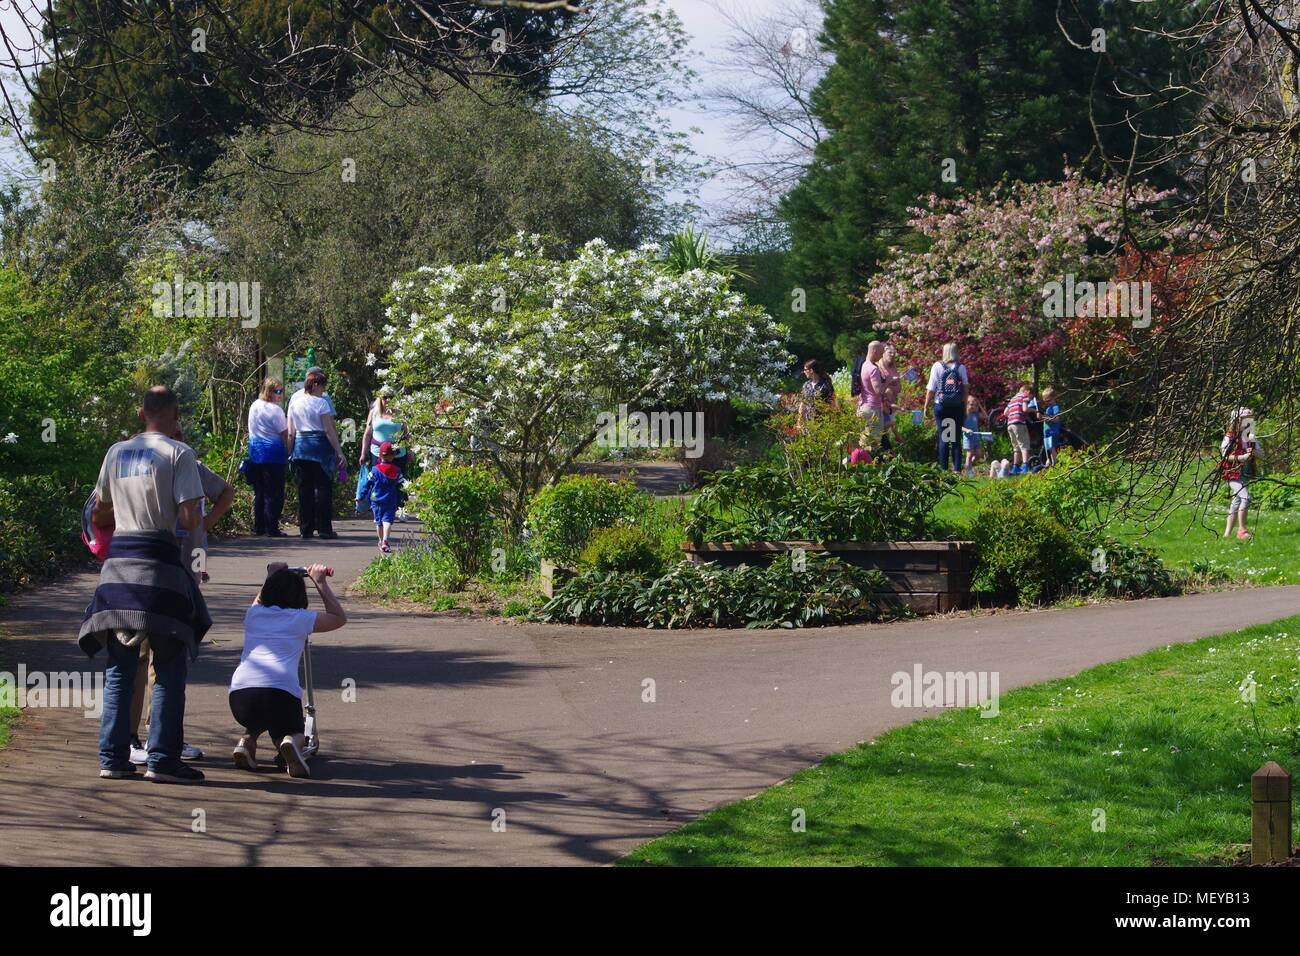 British Families Walking in the Park on a Spring Day. Rougemont Gardens, Exeter, Devon, UK. April, 2018. - Stock Image